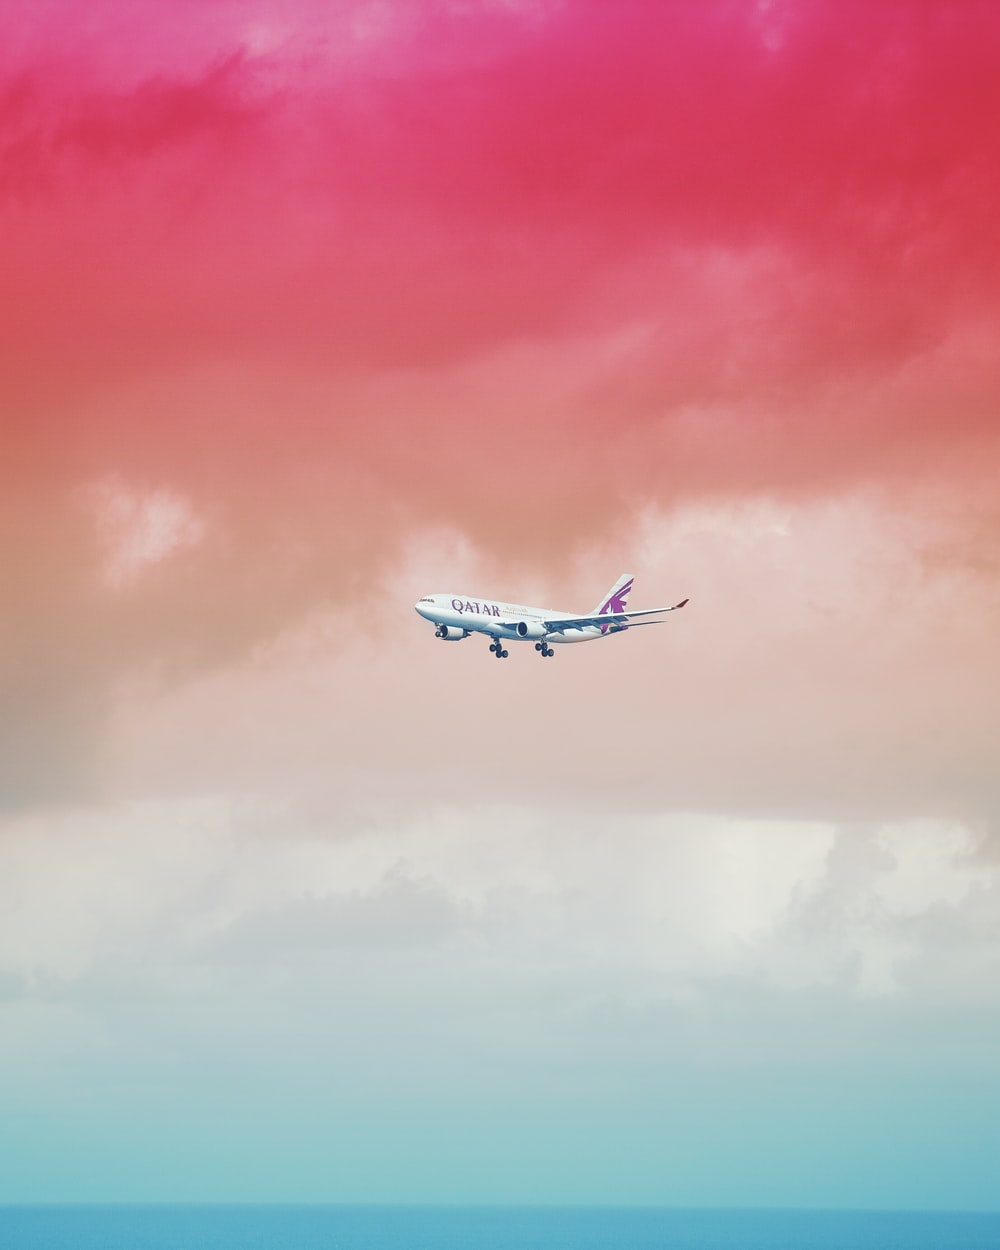 Qatar Airlines airplane flying under red cloud formation